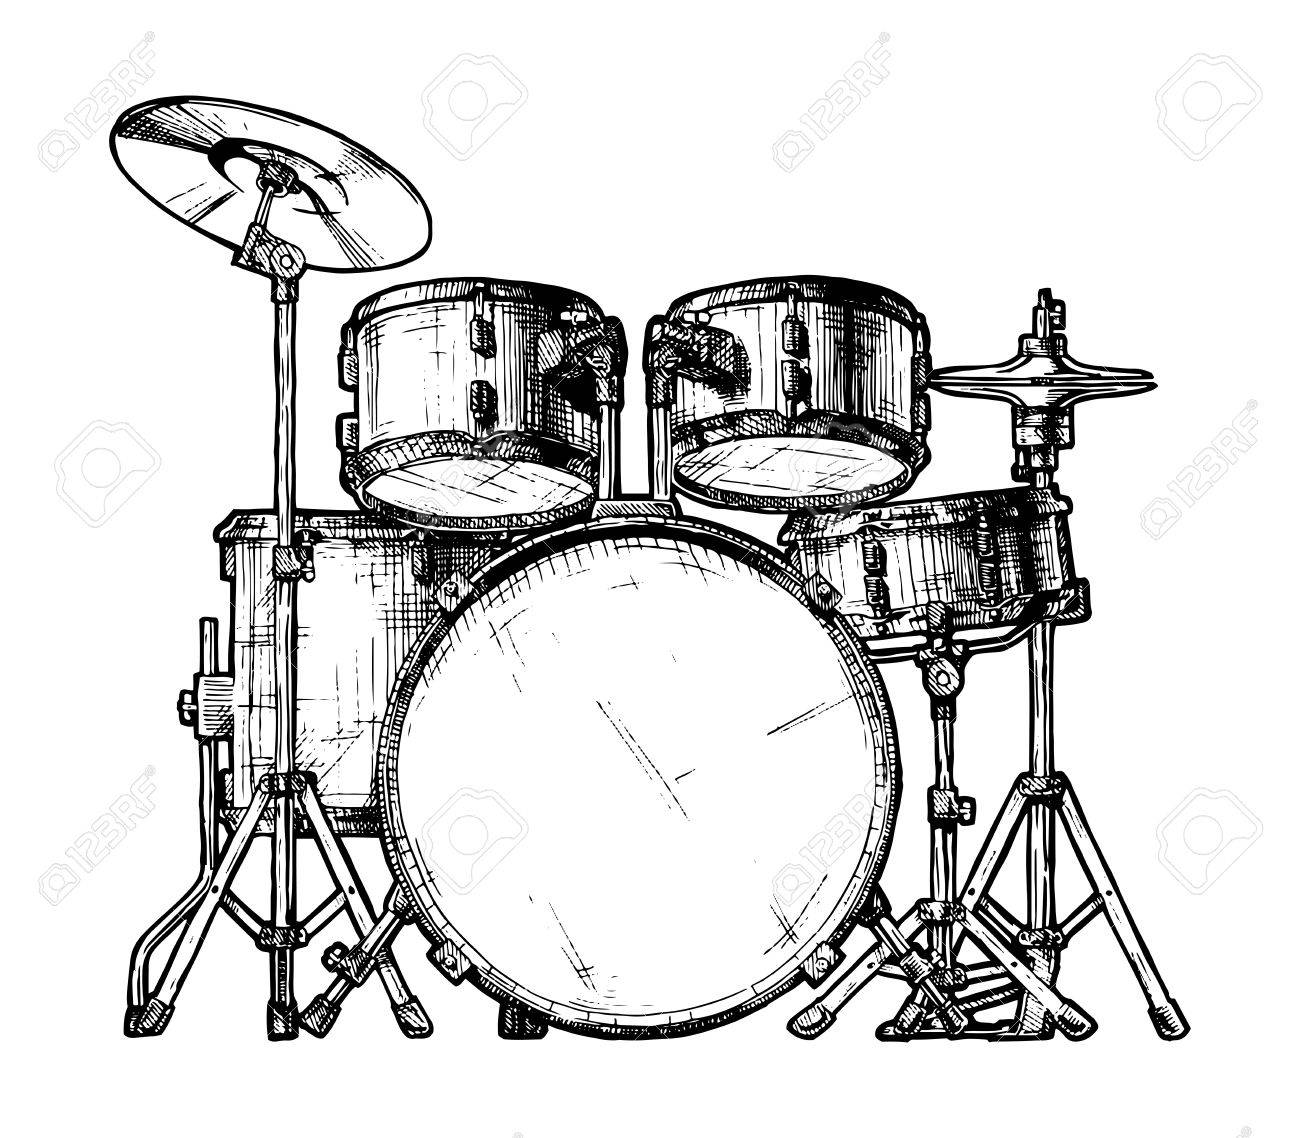 bass drum drawing at getdrawings com